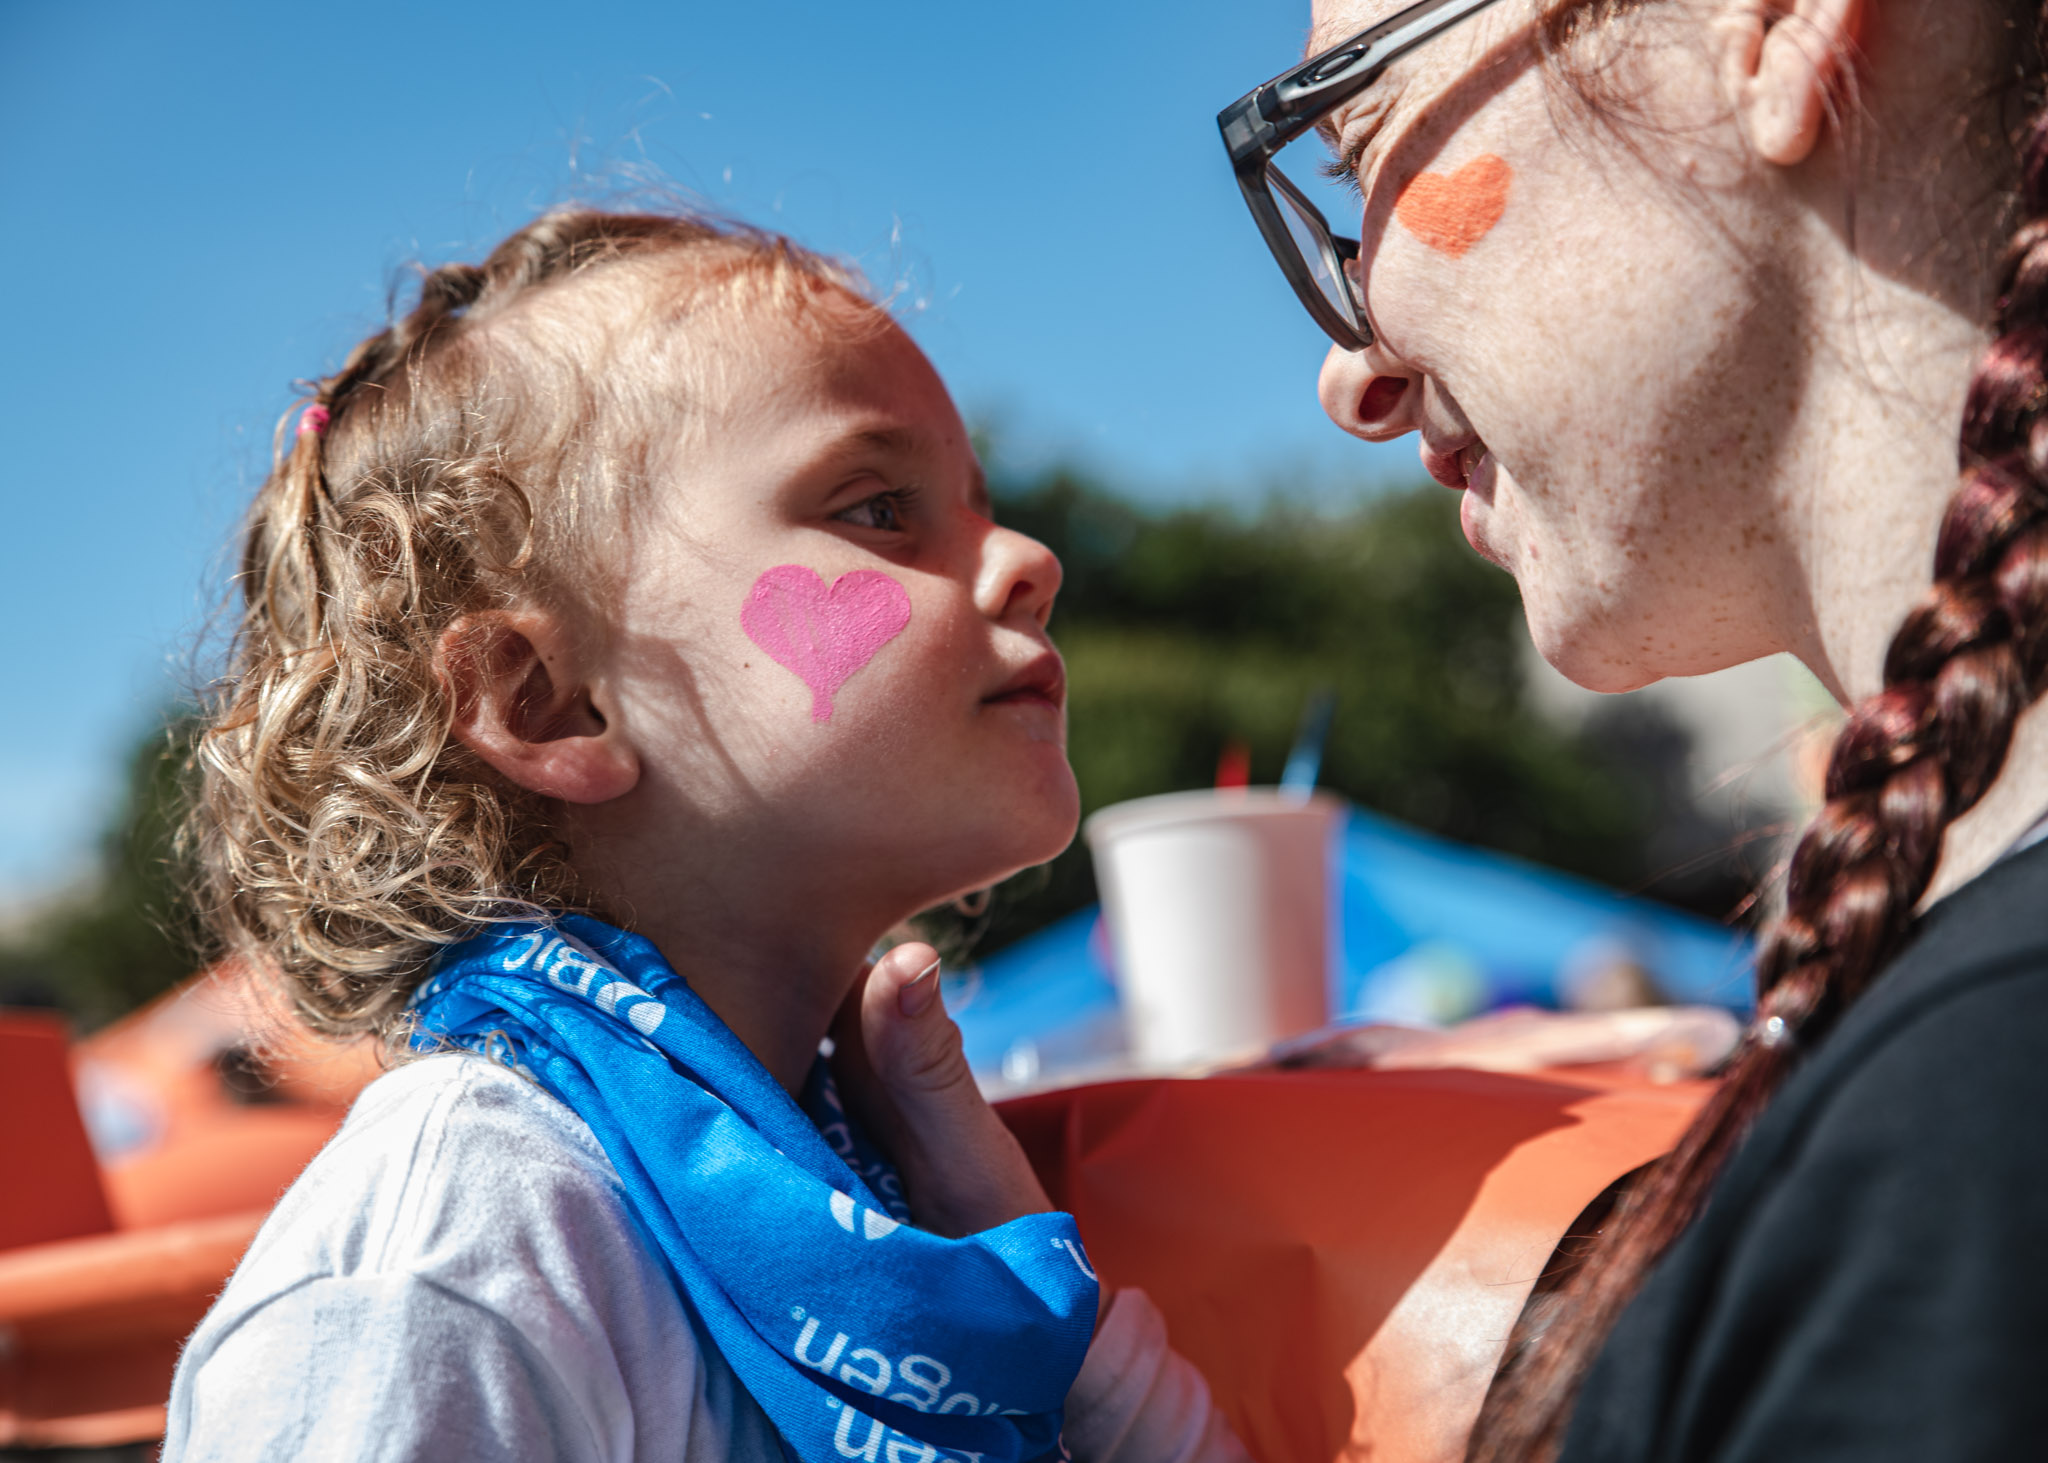 Young girl with pink heart on her cheek stares at older girl with orange heart on her cheek